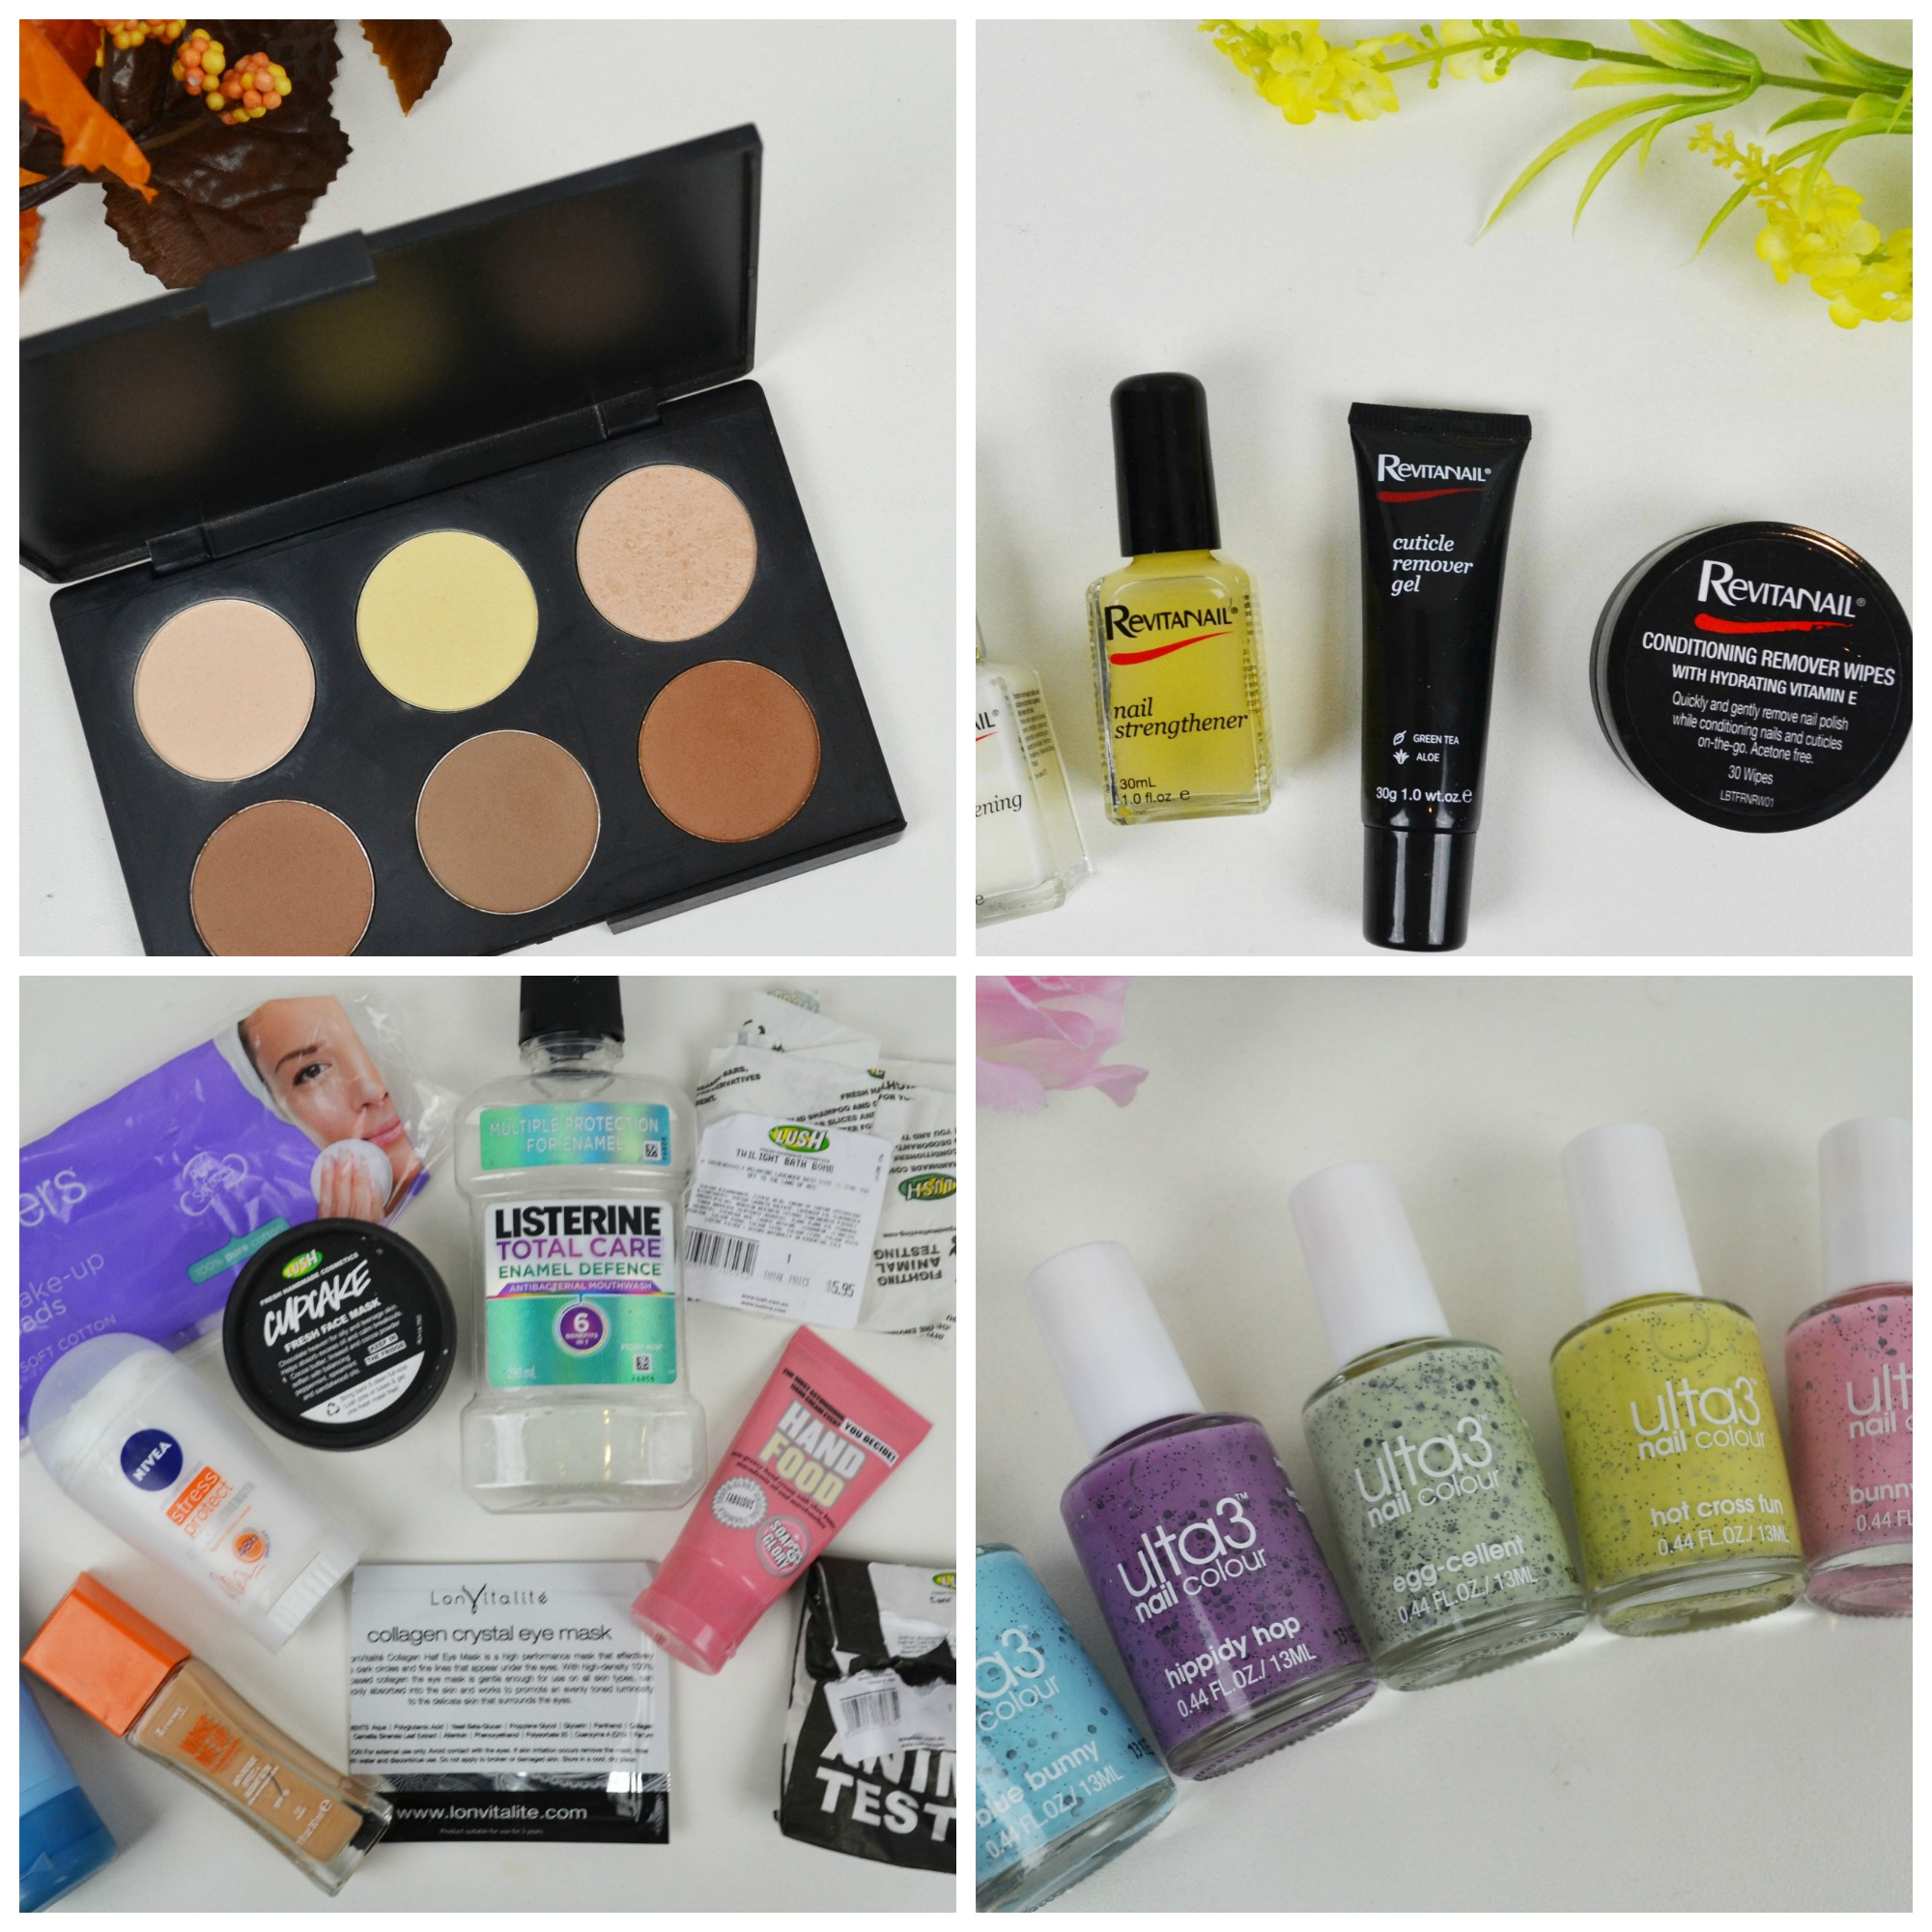 Weekly Round Up, Australis, Revitanail, Empties, Ulta 3